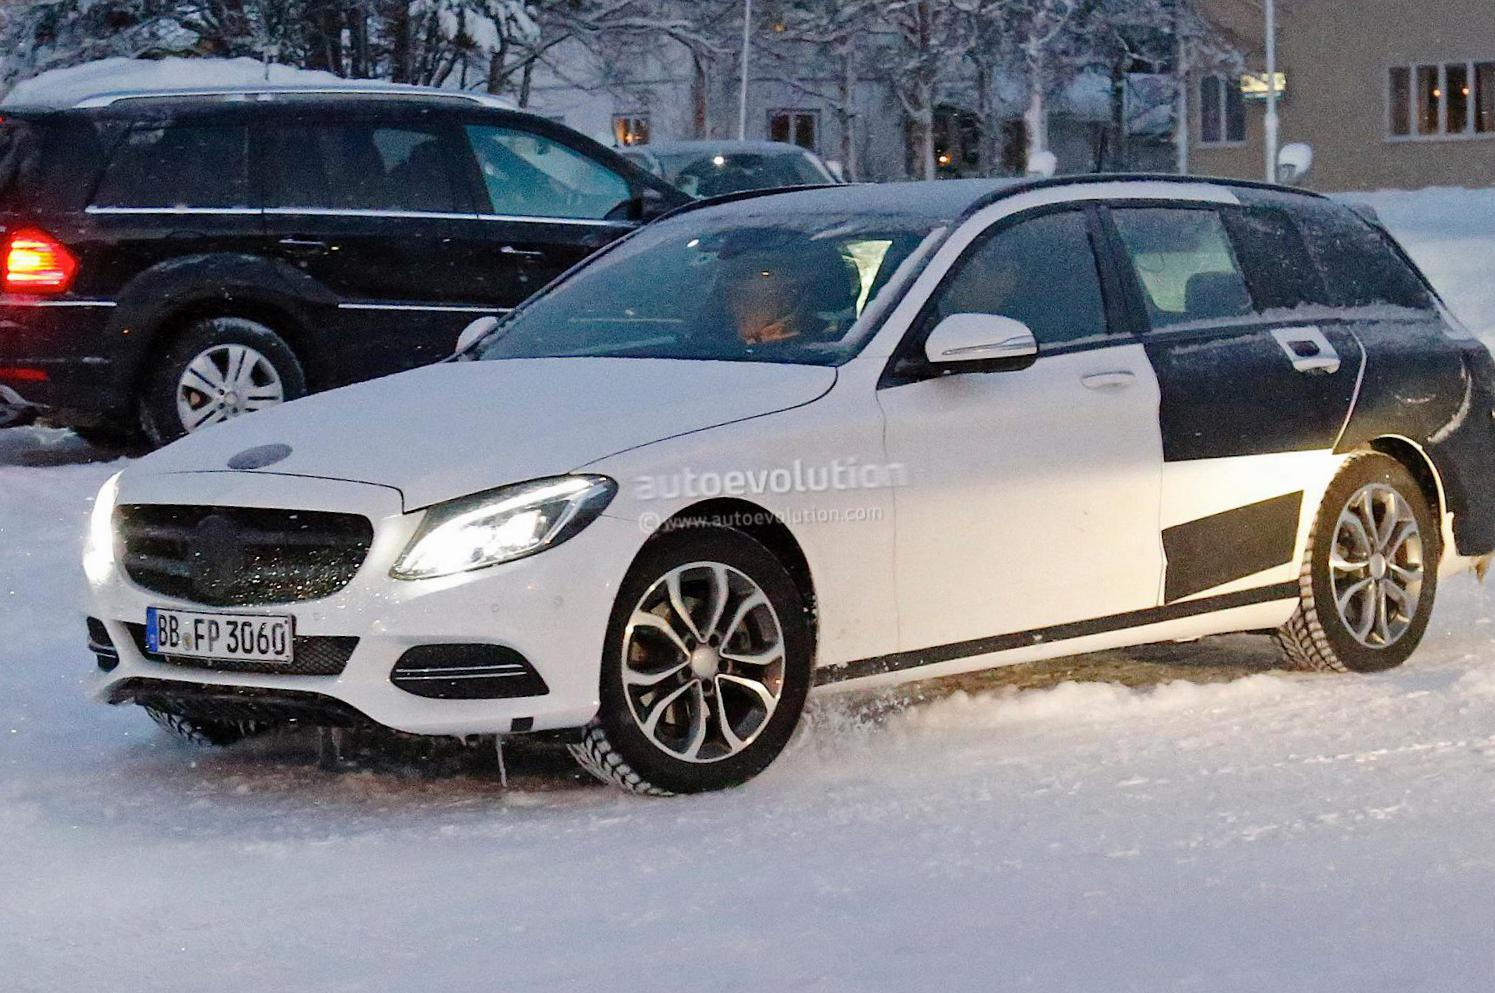 Mercedes C-Class Estate (S205) how mach 2015